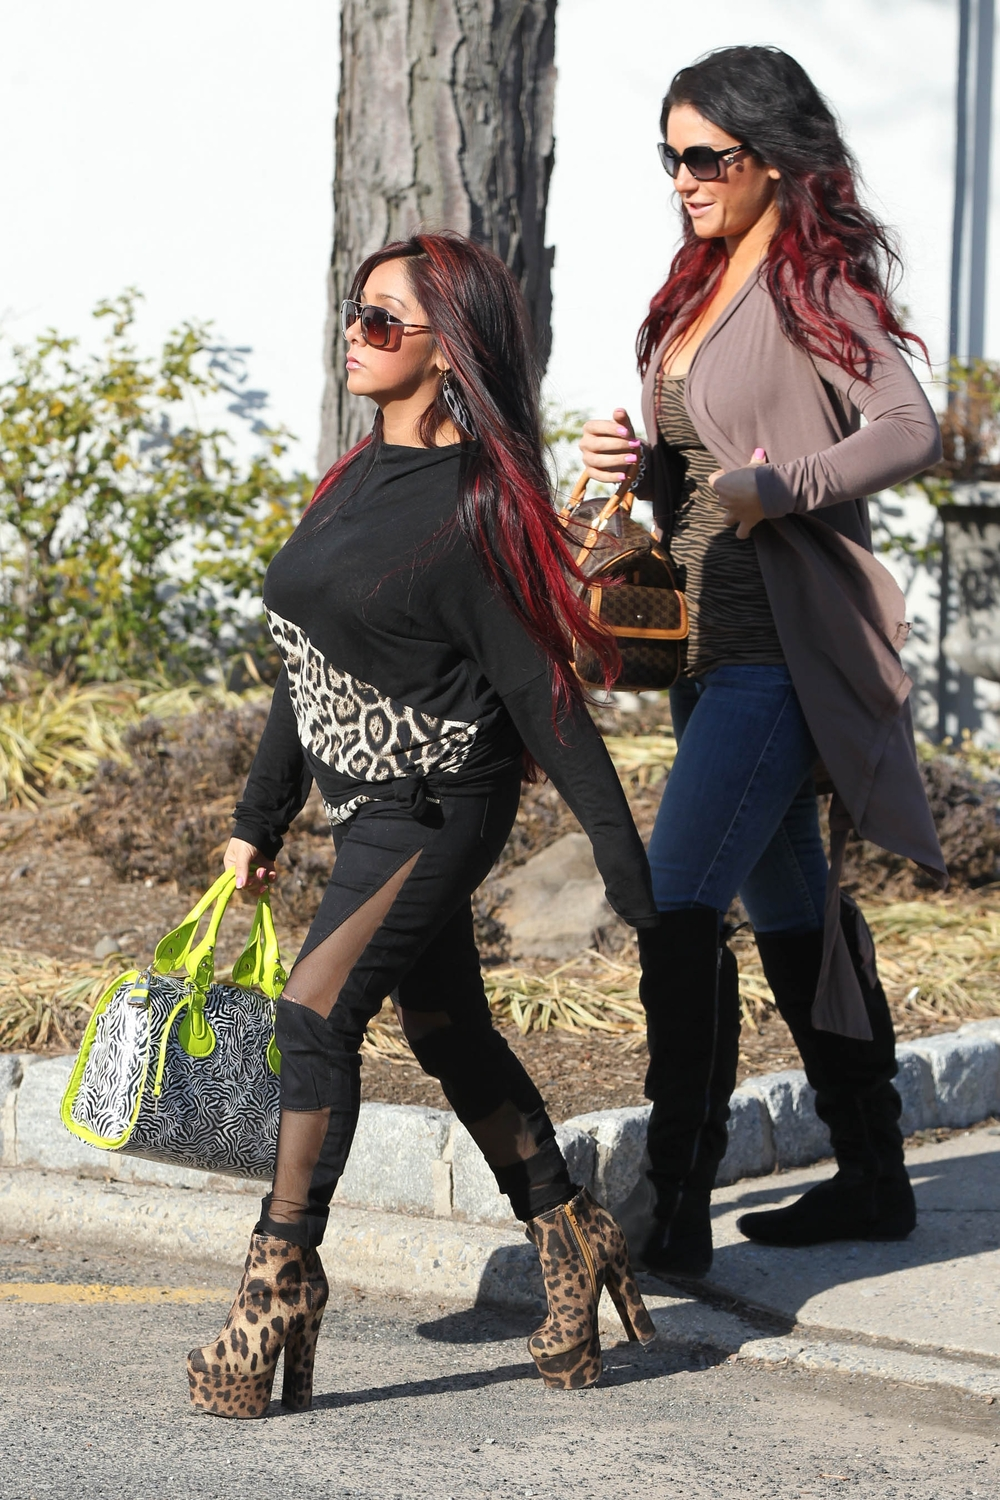 If Snooki Is Pregnant Does This Mean There Won't Be a Jersey Shore Season 6?